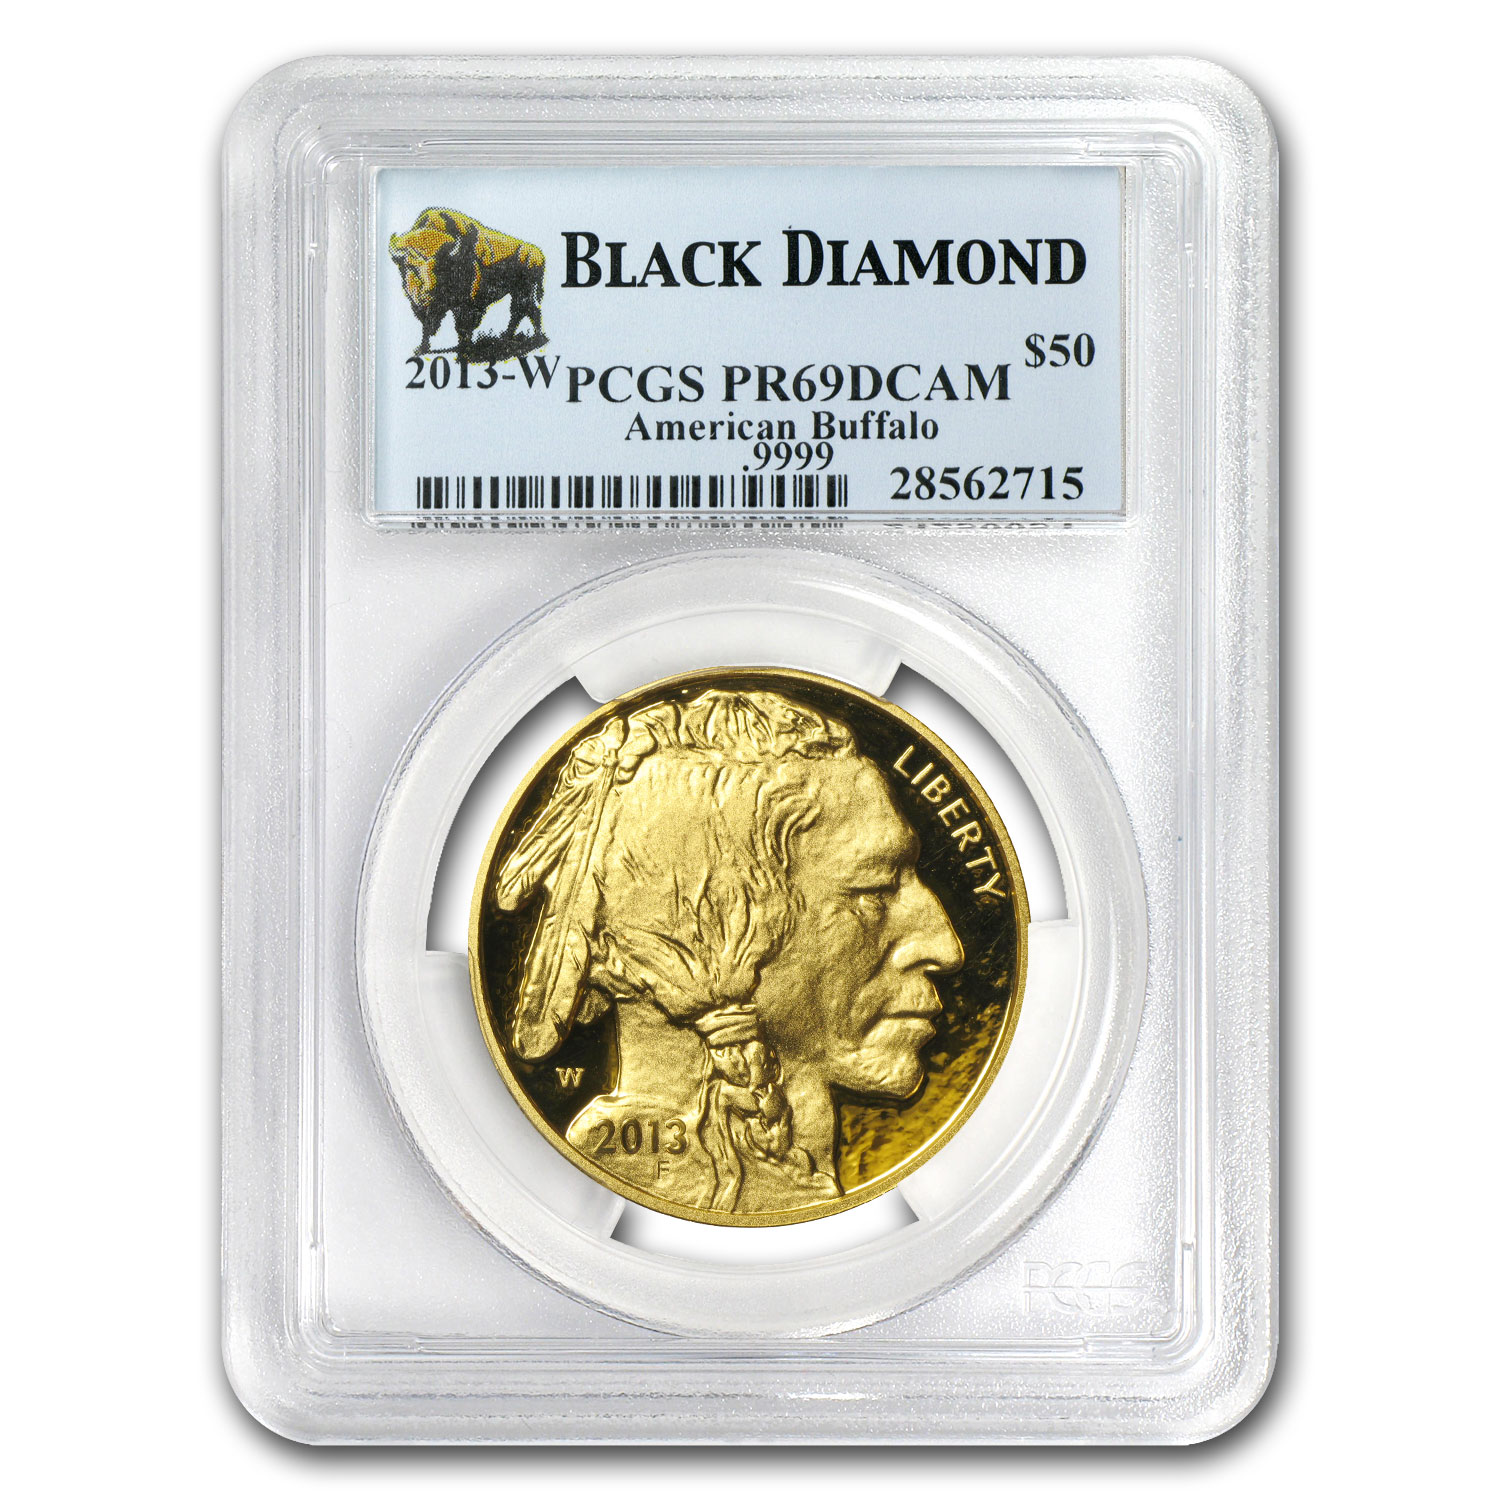 2013-W 1 oz Proof Gold Buffalo PR-69 PCGS (Black Diamond)